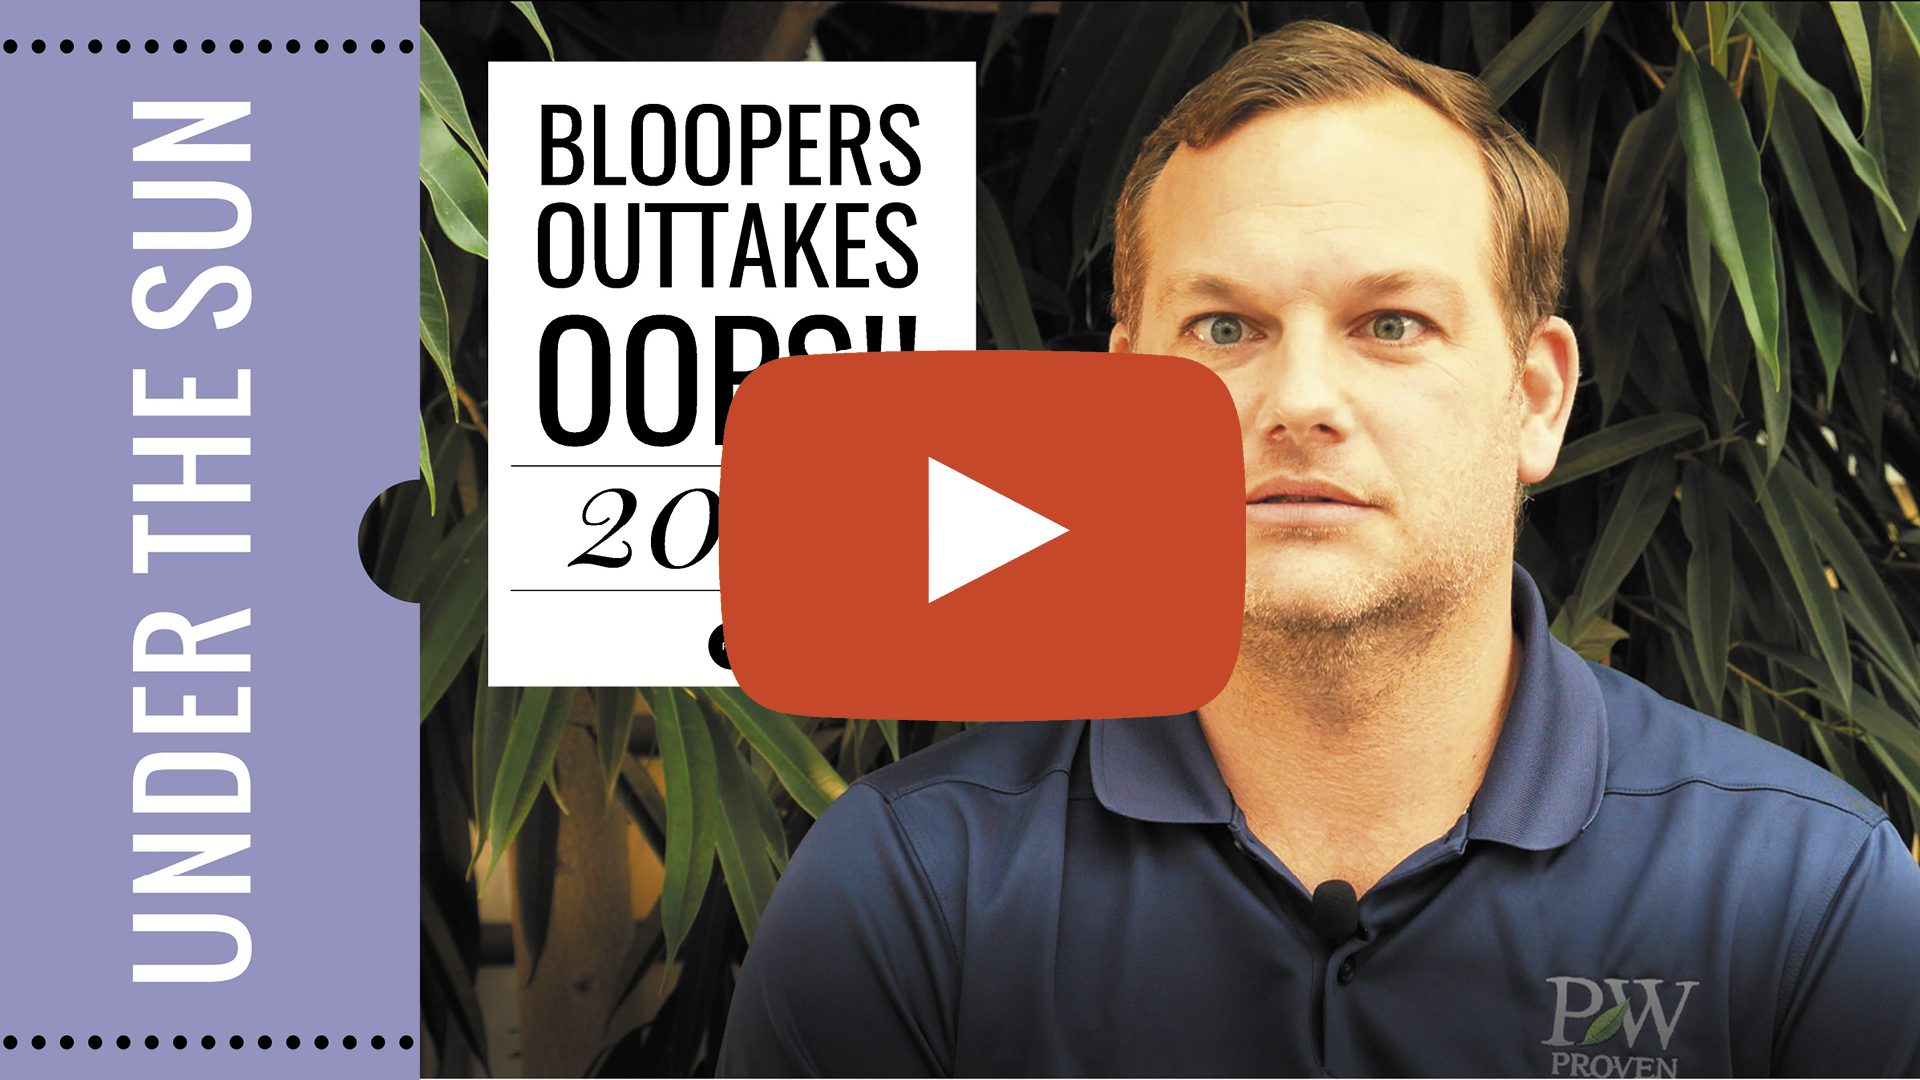 Bloopers Outtakes and Oops